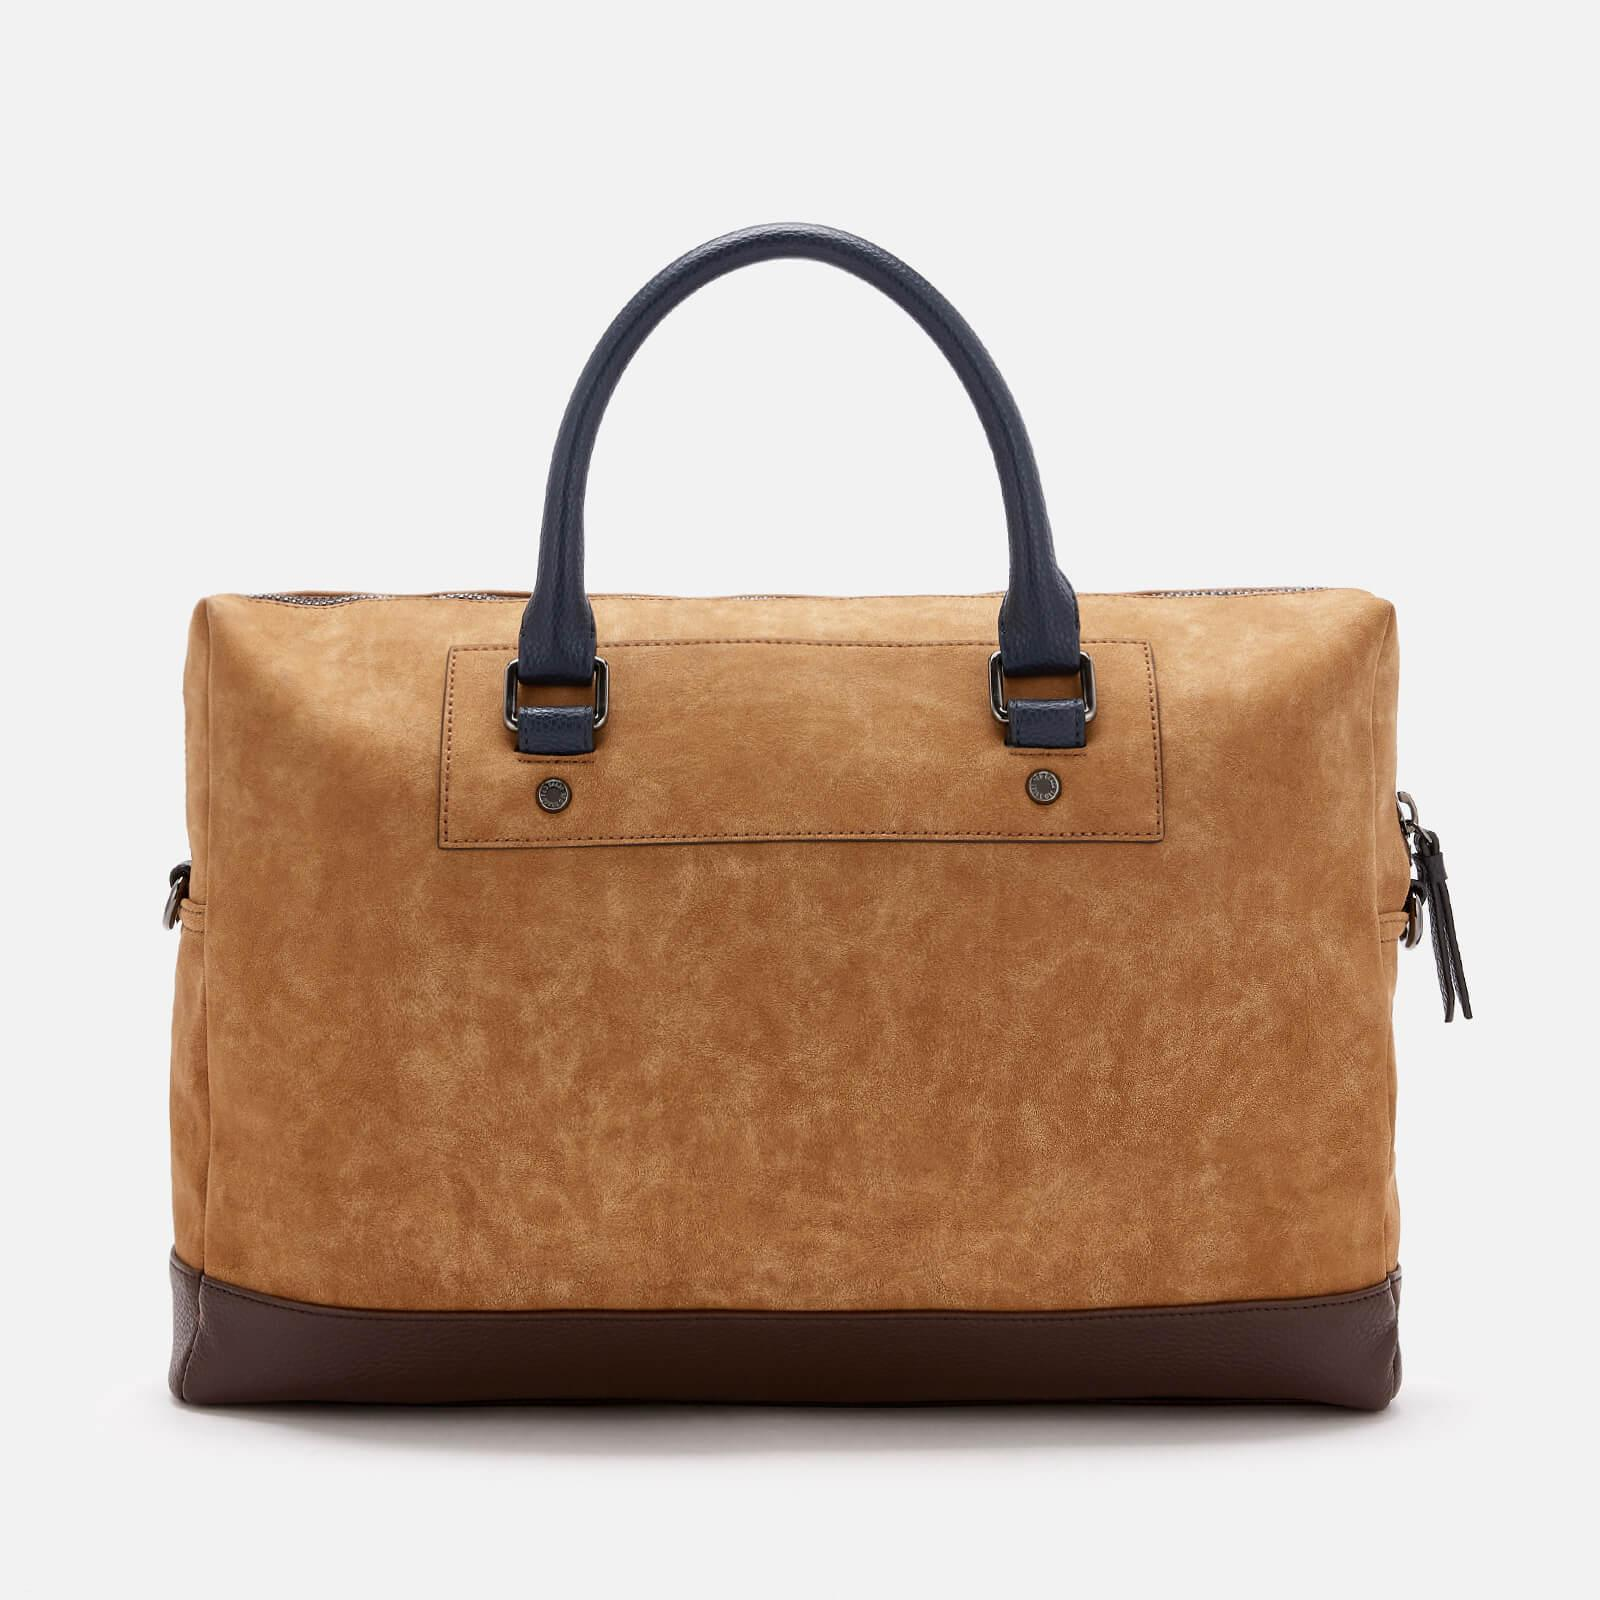 cda1ecf5df Ted Baker - Multicolor Pitza Nubuck Document Bag for Men - Lyst. View  fullscreen